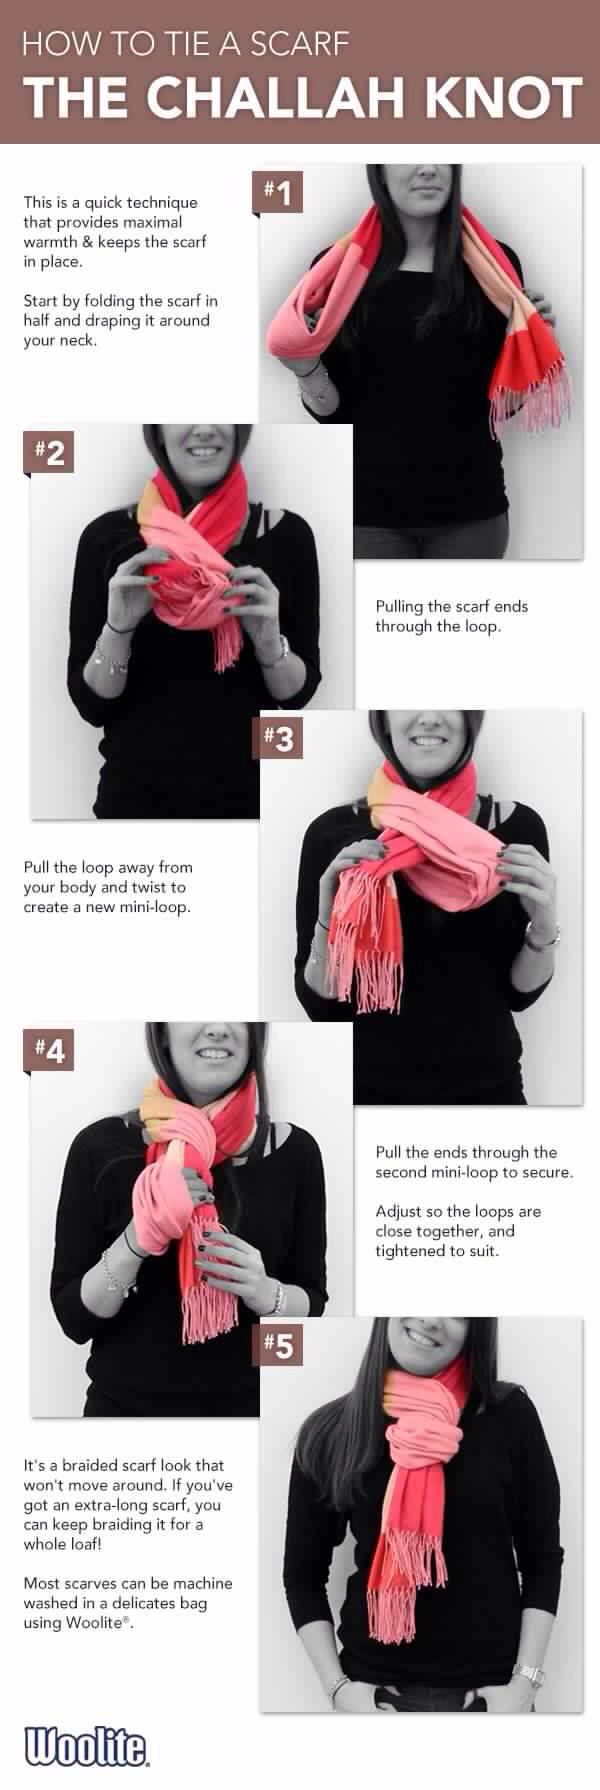 do the twist loop thing but pull both ends of the scarf through each time instead of only one